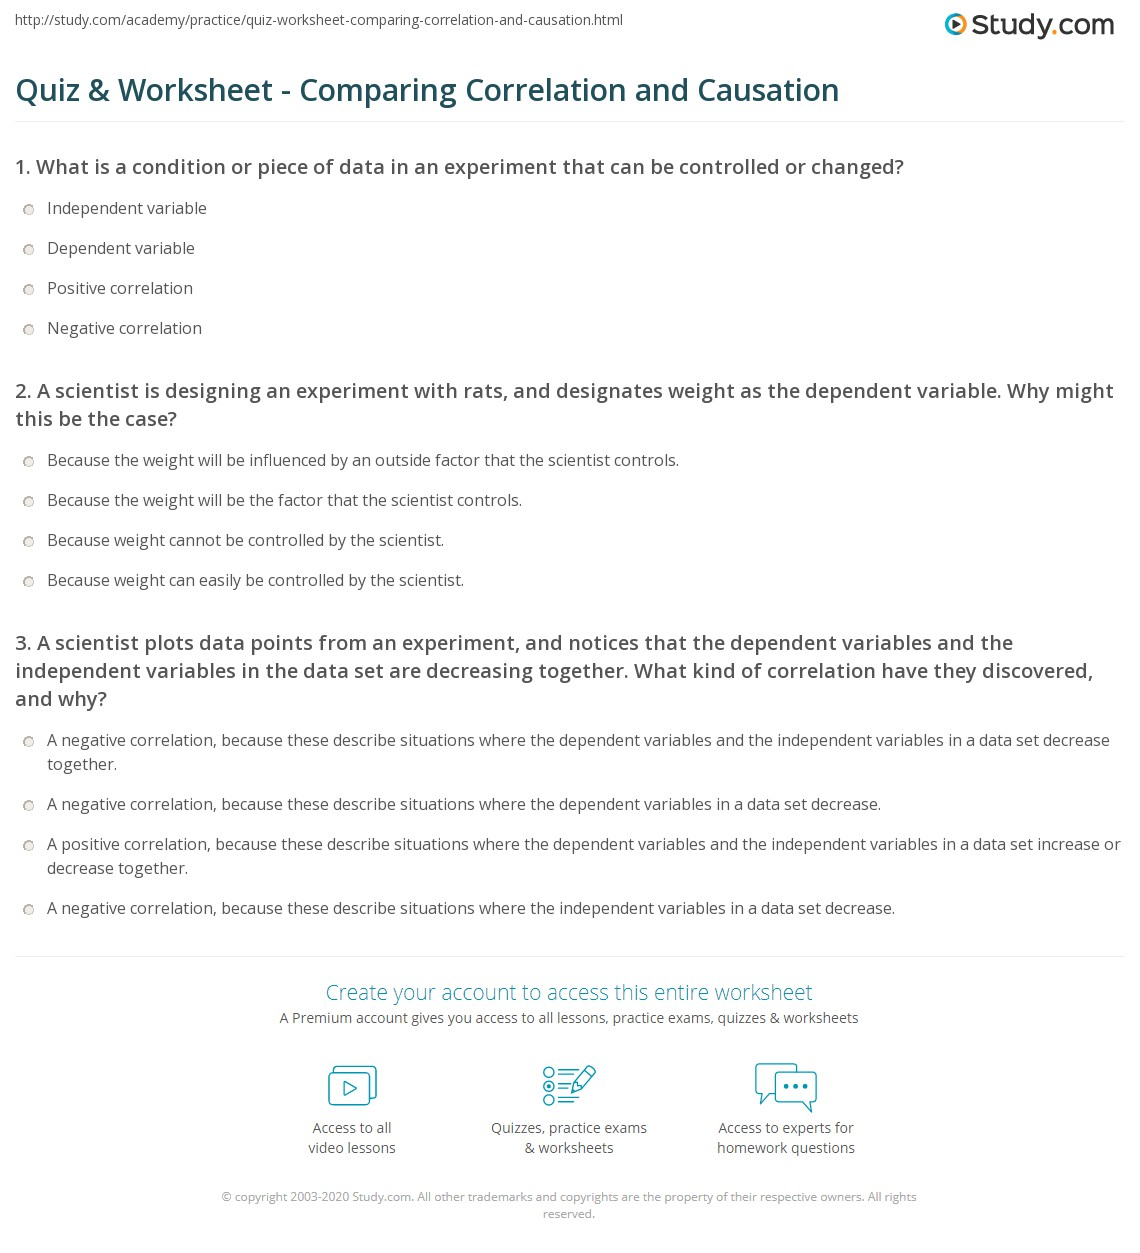 Aldiablosus  Pleasing Quiz Amp Worksheet  Comparing Correlation And Causation  Studycom With Extraordinary Print Correlation Vs Causation Differences Amp Definition Worksheet With Divine Exponential Growth Decay Worksheet Also Anatomy Worksheet In Addition Sat Prep Worksheets And Simple Subject Worksheets As Well As Volume Cylinder Worksheet Additionally Reading Comprehension Worksheet Nd Grade From Studycom With Aldiablosus  Extraordinary Quiz Amp Worksheet  Comparing Correlation And Causation  Studycom With Divine Print Correlation Vs Causation Differences Amp Definition Worksheet And Pleasing Exponential Growth Decay Worksheet Also Anatomy Worksheet In Addition Sat Prep Worksheets From Studycom